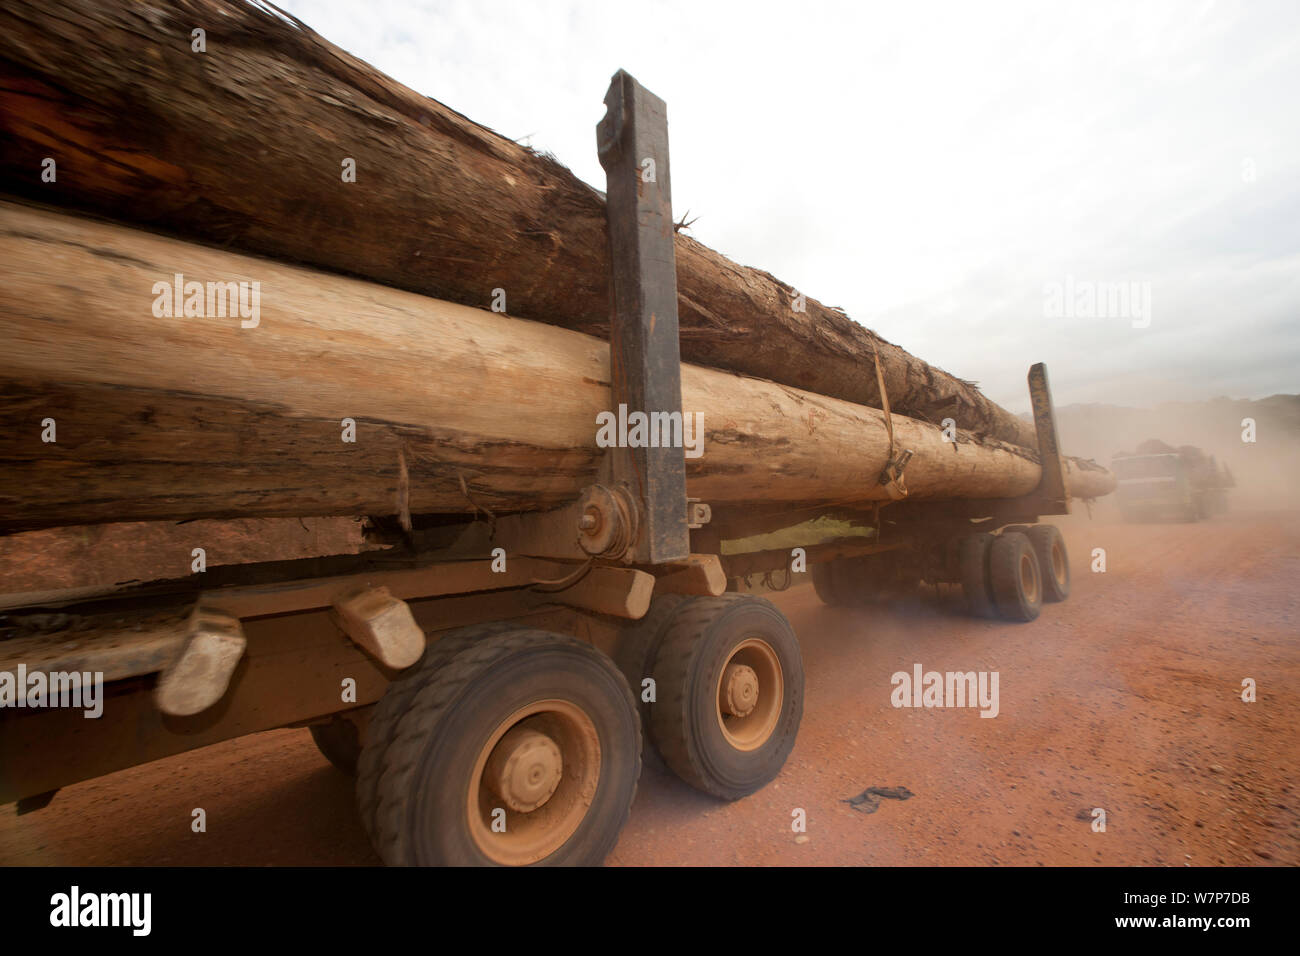 Trucks used for large-scale hardwood timber extraction with hardwood logs being taken from lumber yard located inside the Lope National Park. Onward shipment via sea takes place from Libreville, Gabon. 2009 Stock Photo